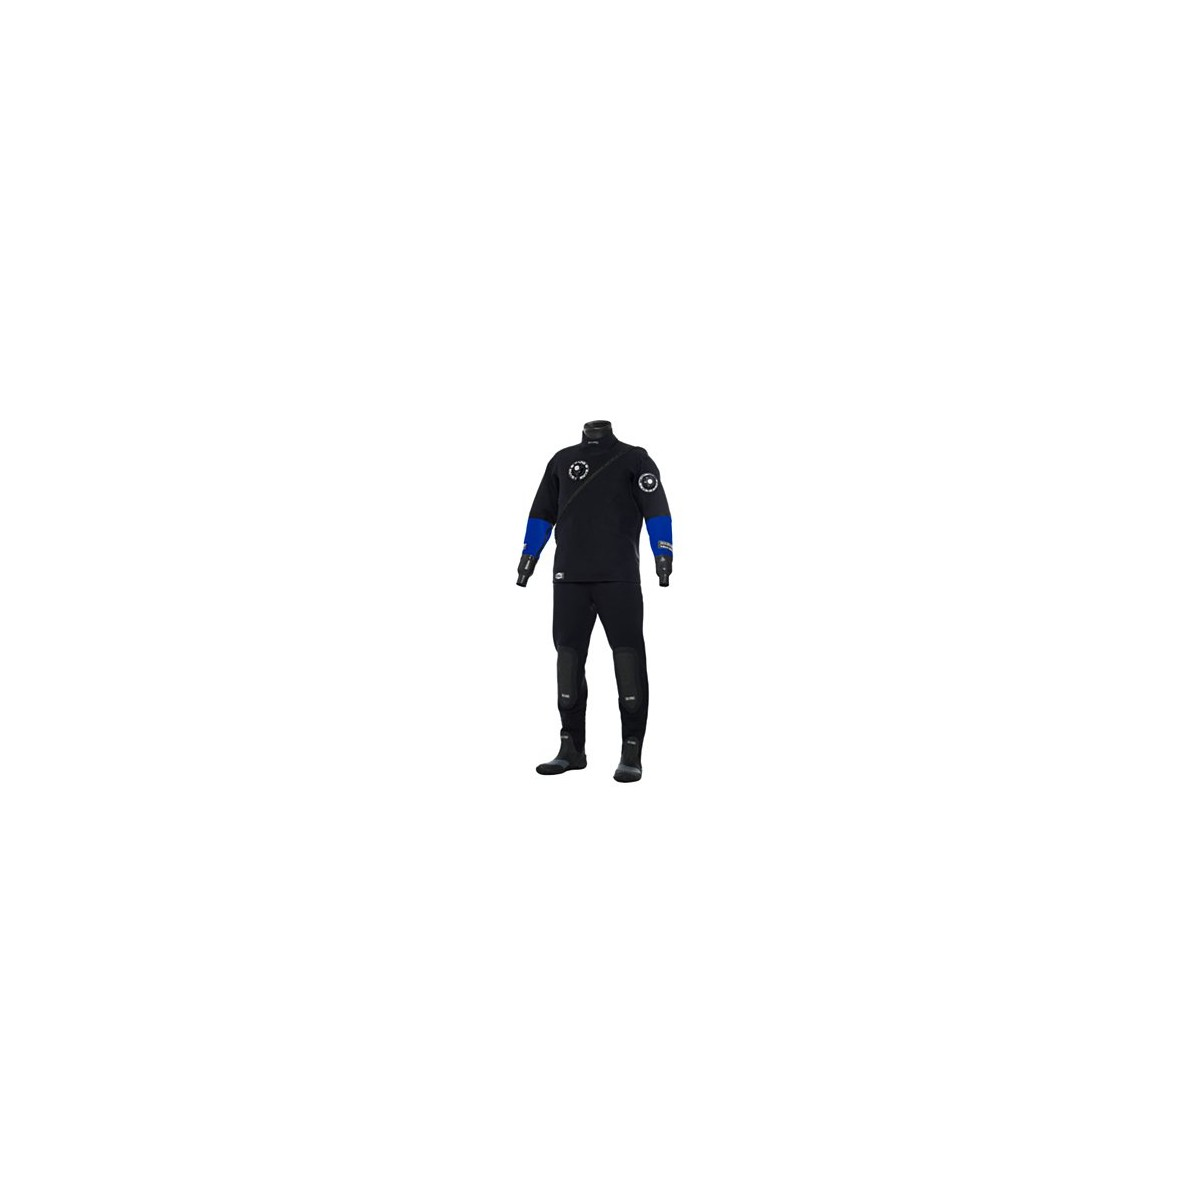 Bare XCD2 Tech Dry DrySuit With Lifetime Guarantee Dry Suit